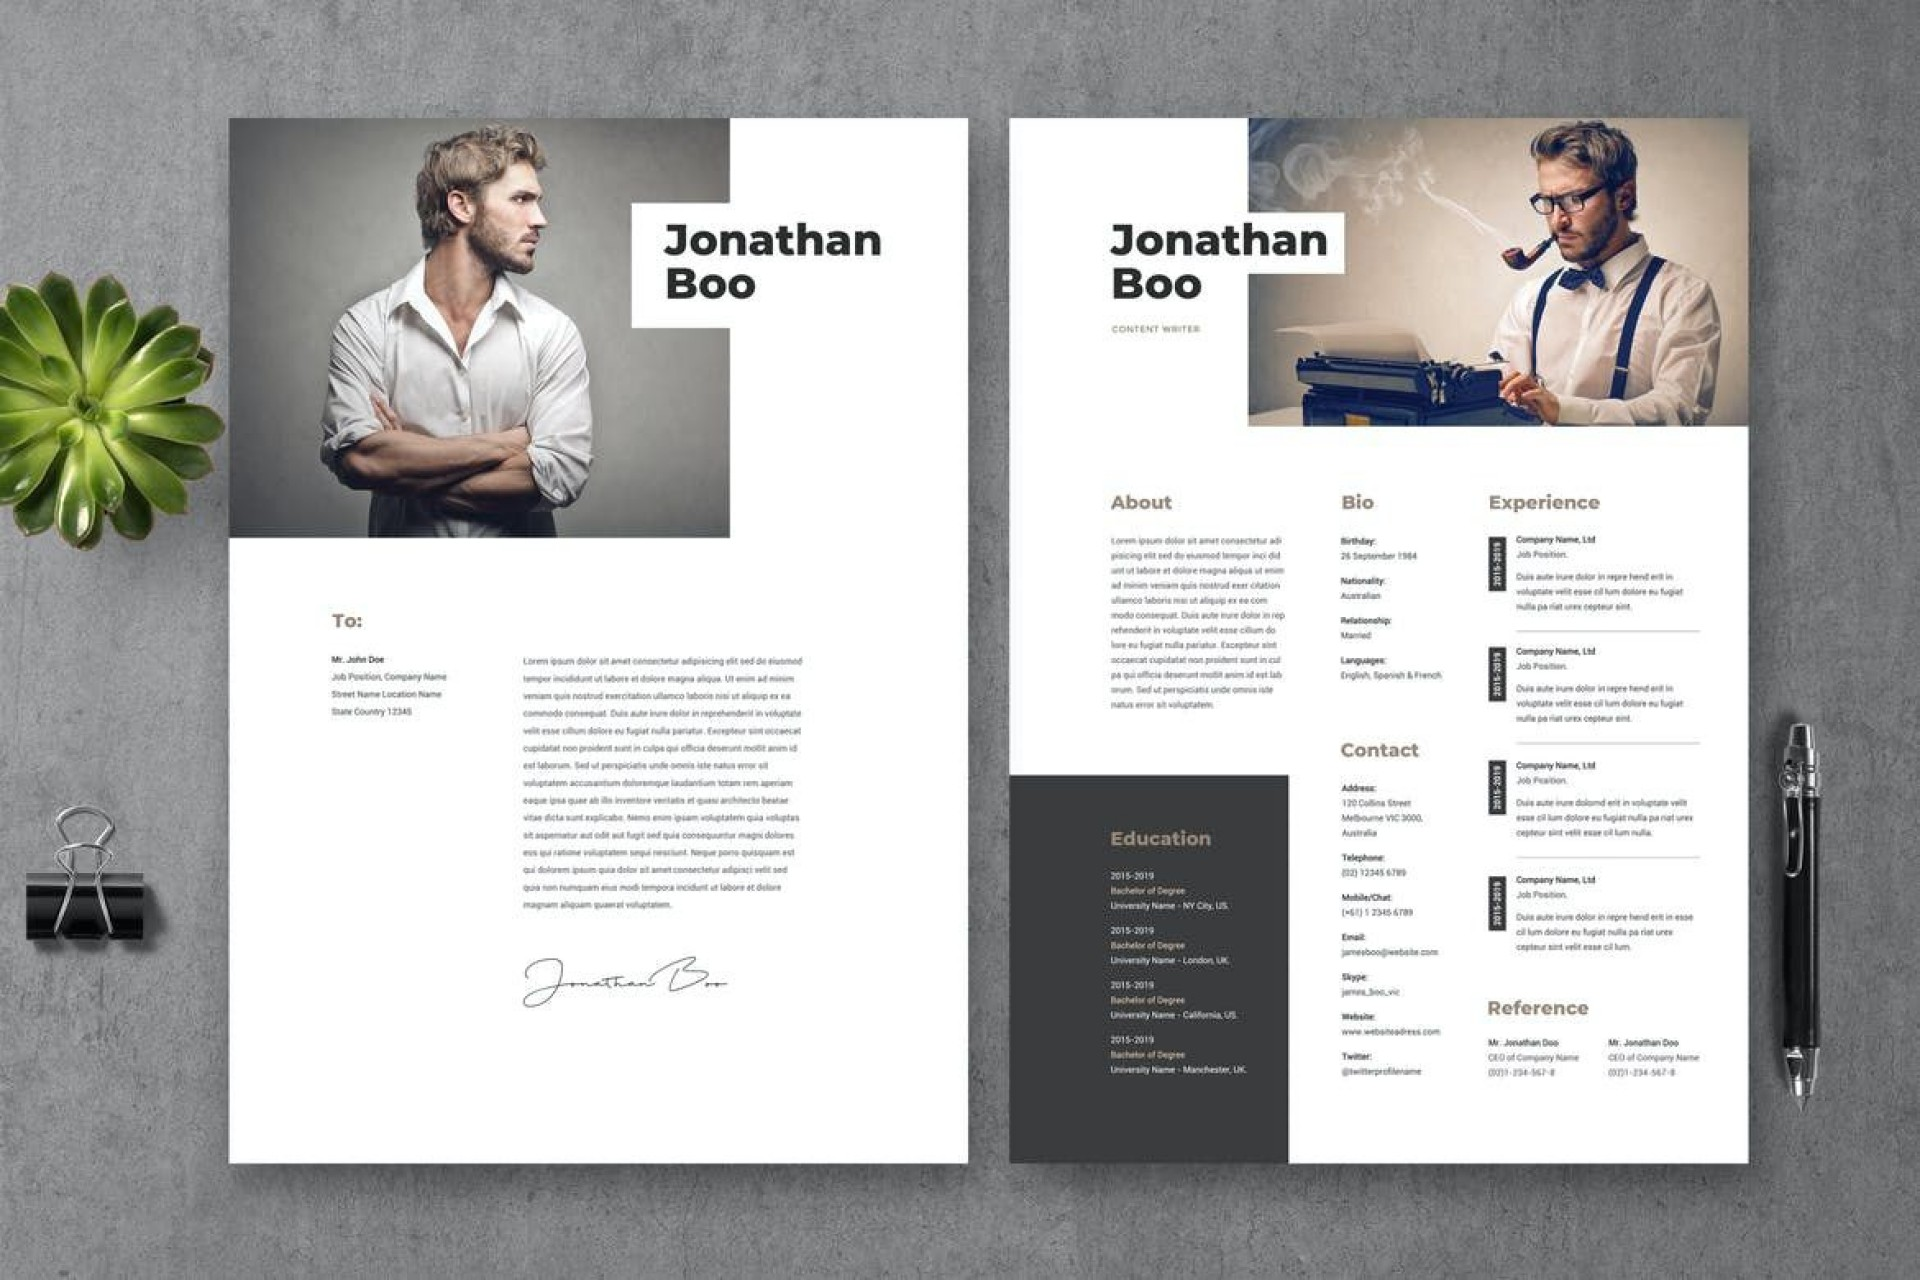 008 Wonderful How To Create A Resume Template In Photoshop Highest Quality 1920